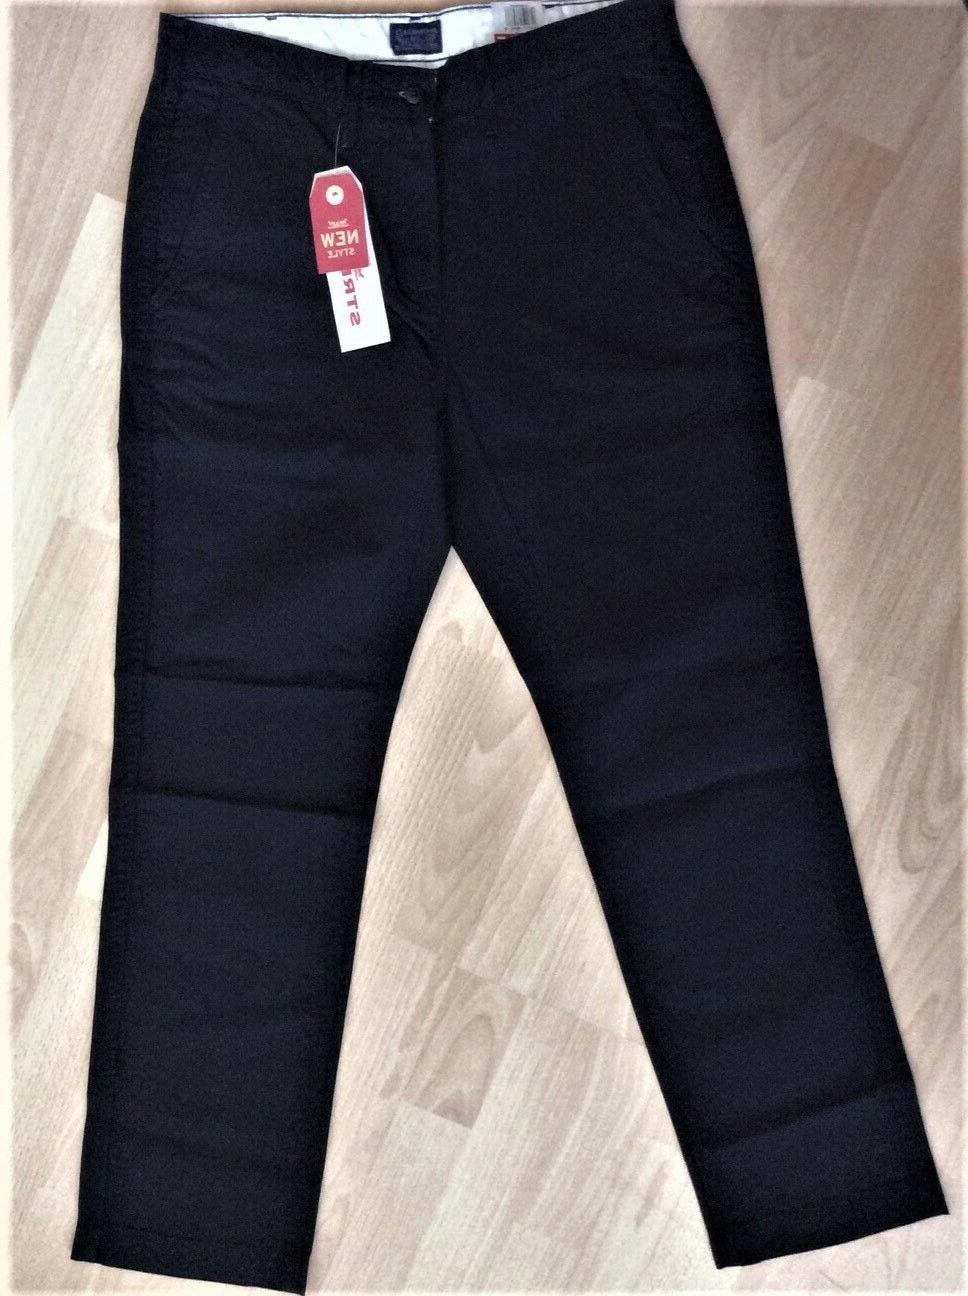 Levi's NWT 541 0001 44x32 ~ Athletic Fit Chinos